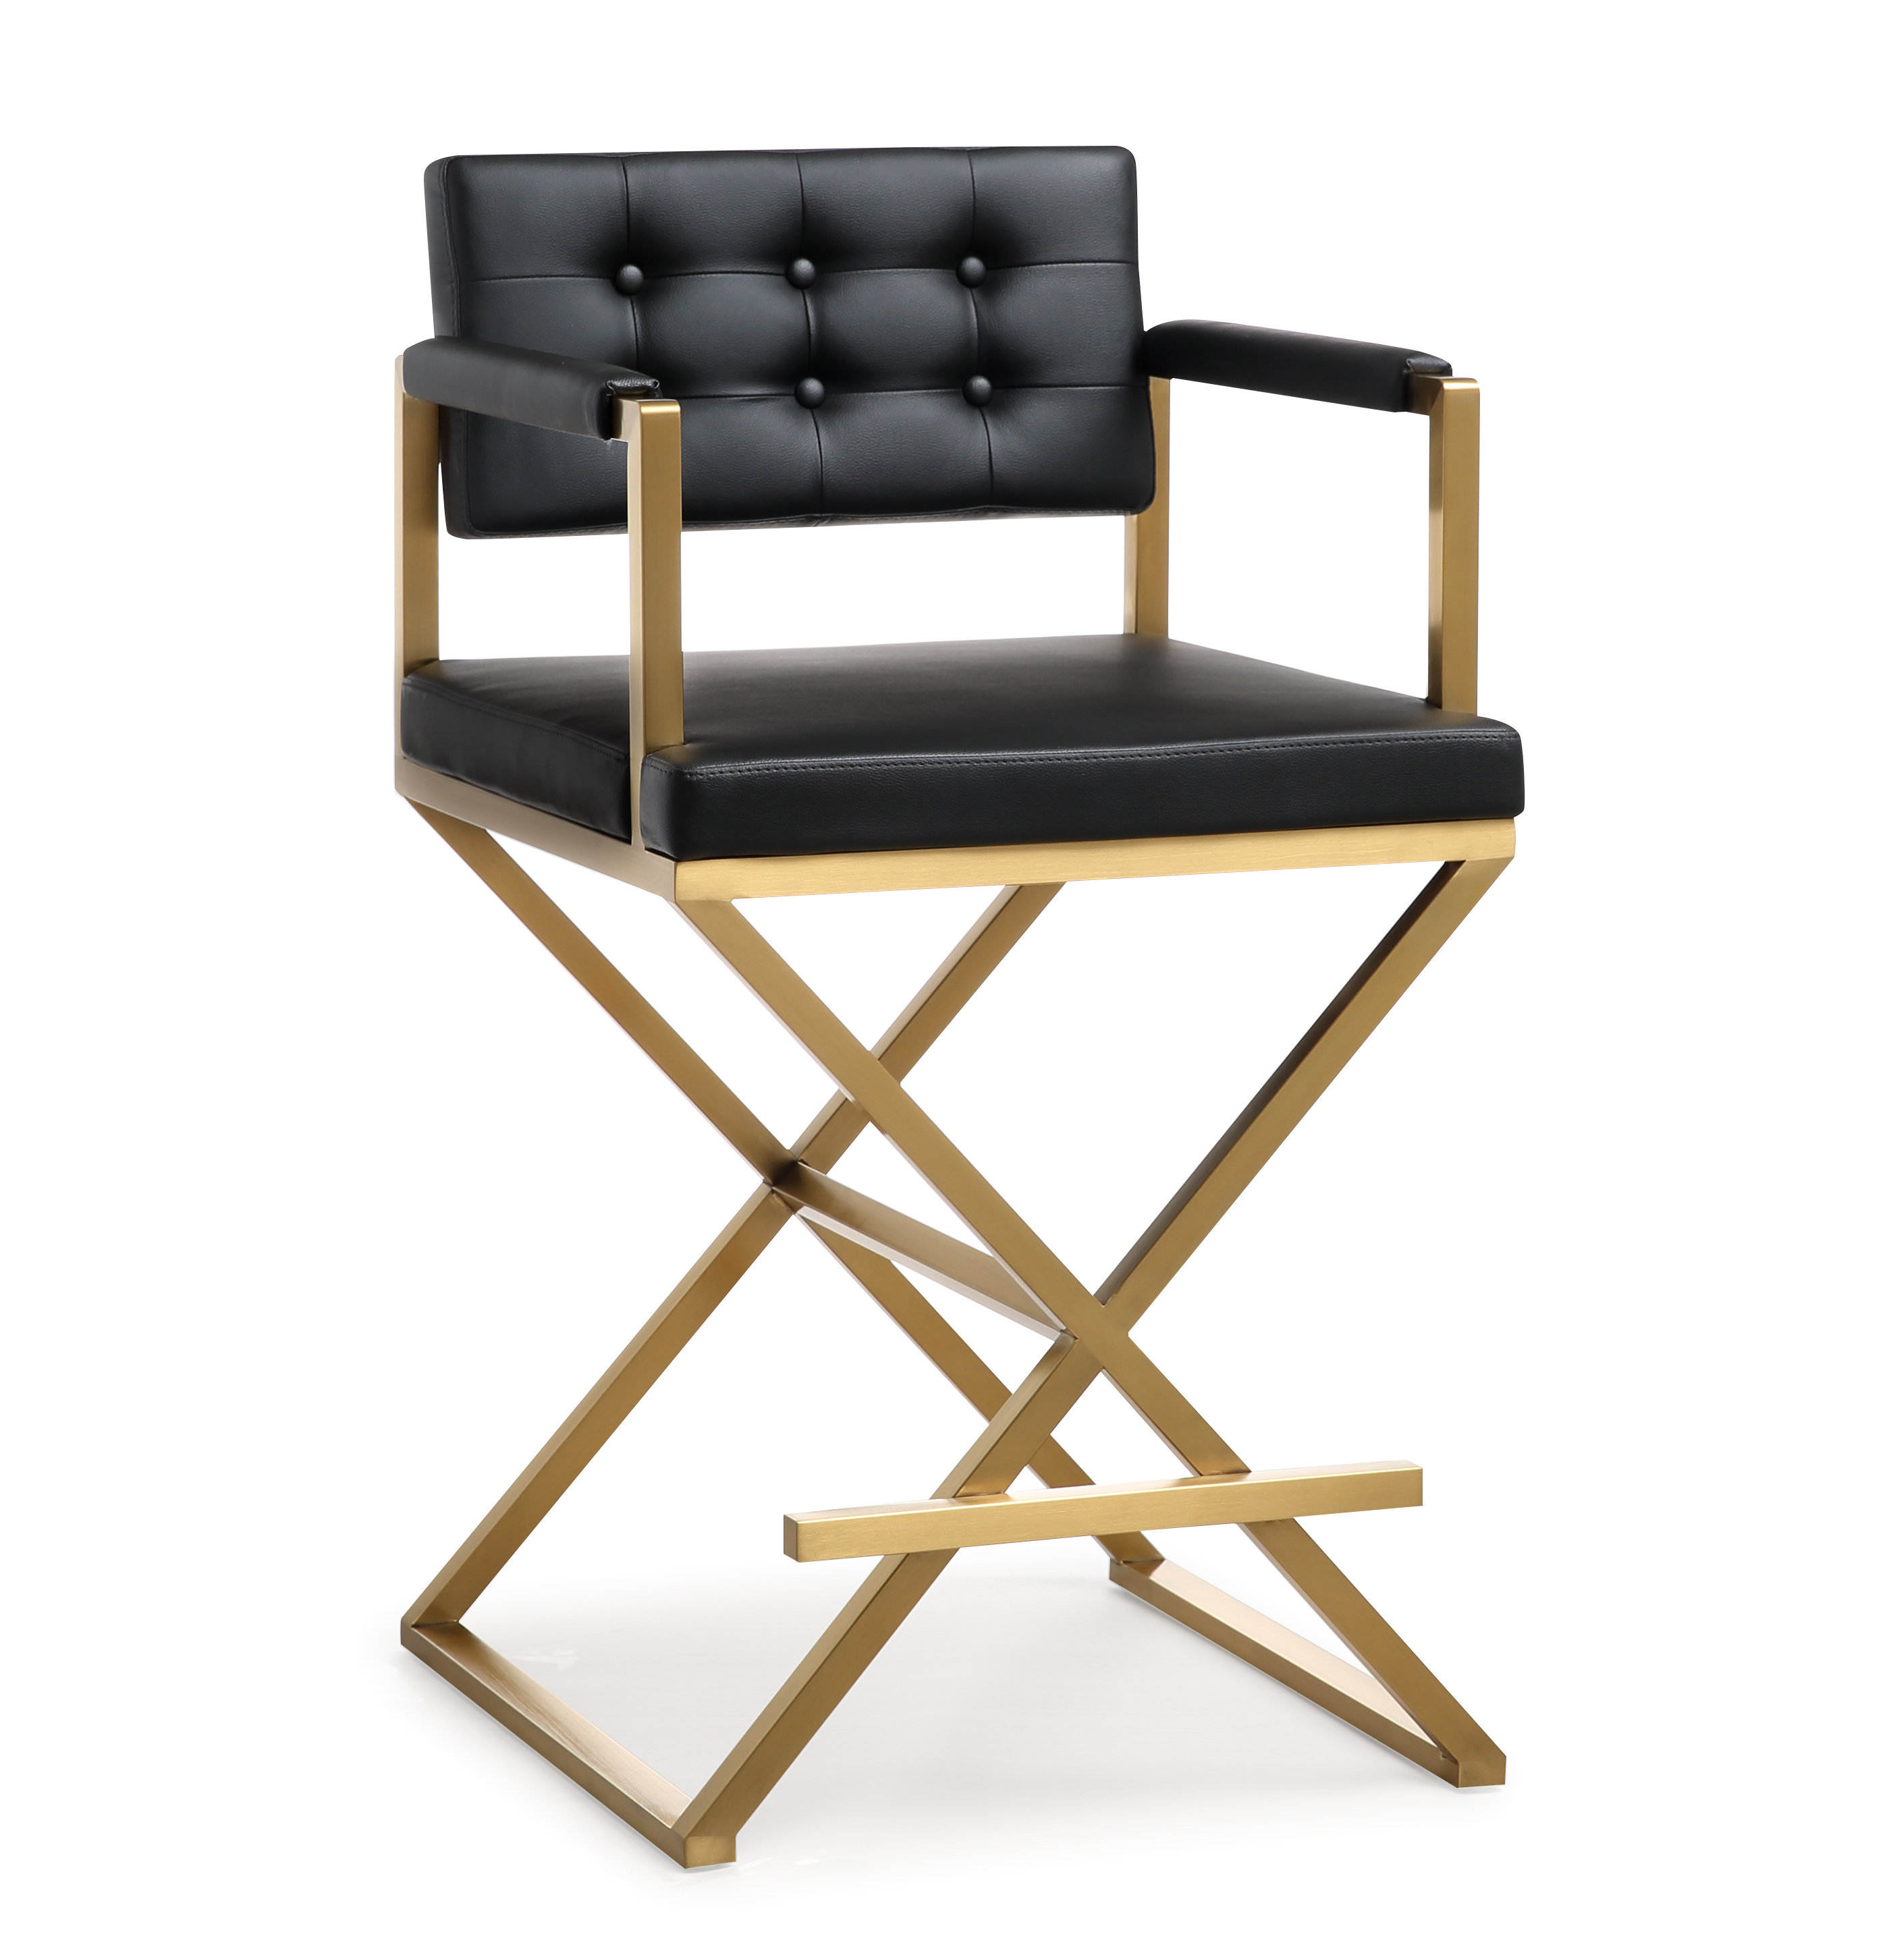 Swell Tov Furniture Mod Black Gold Director Counter Stool Unemploymentrelief Wooden Chair Designs For Living Room Unemploymentrelieforg